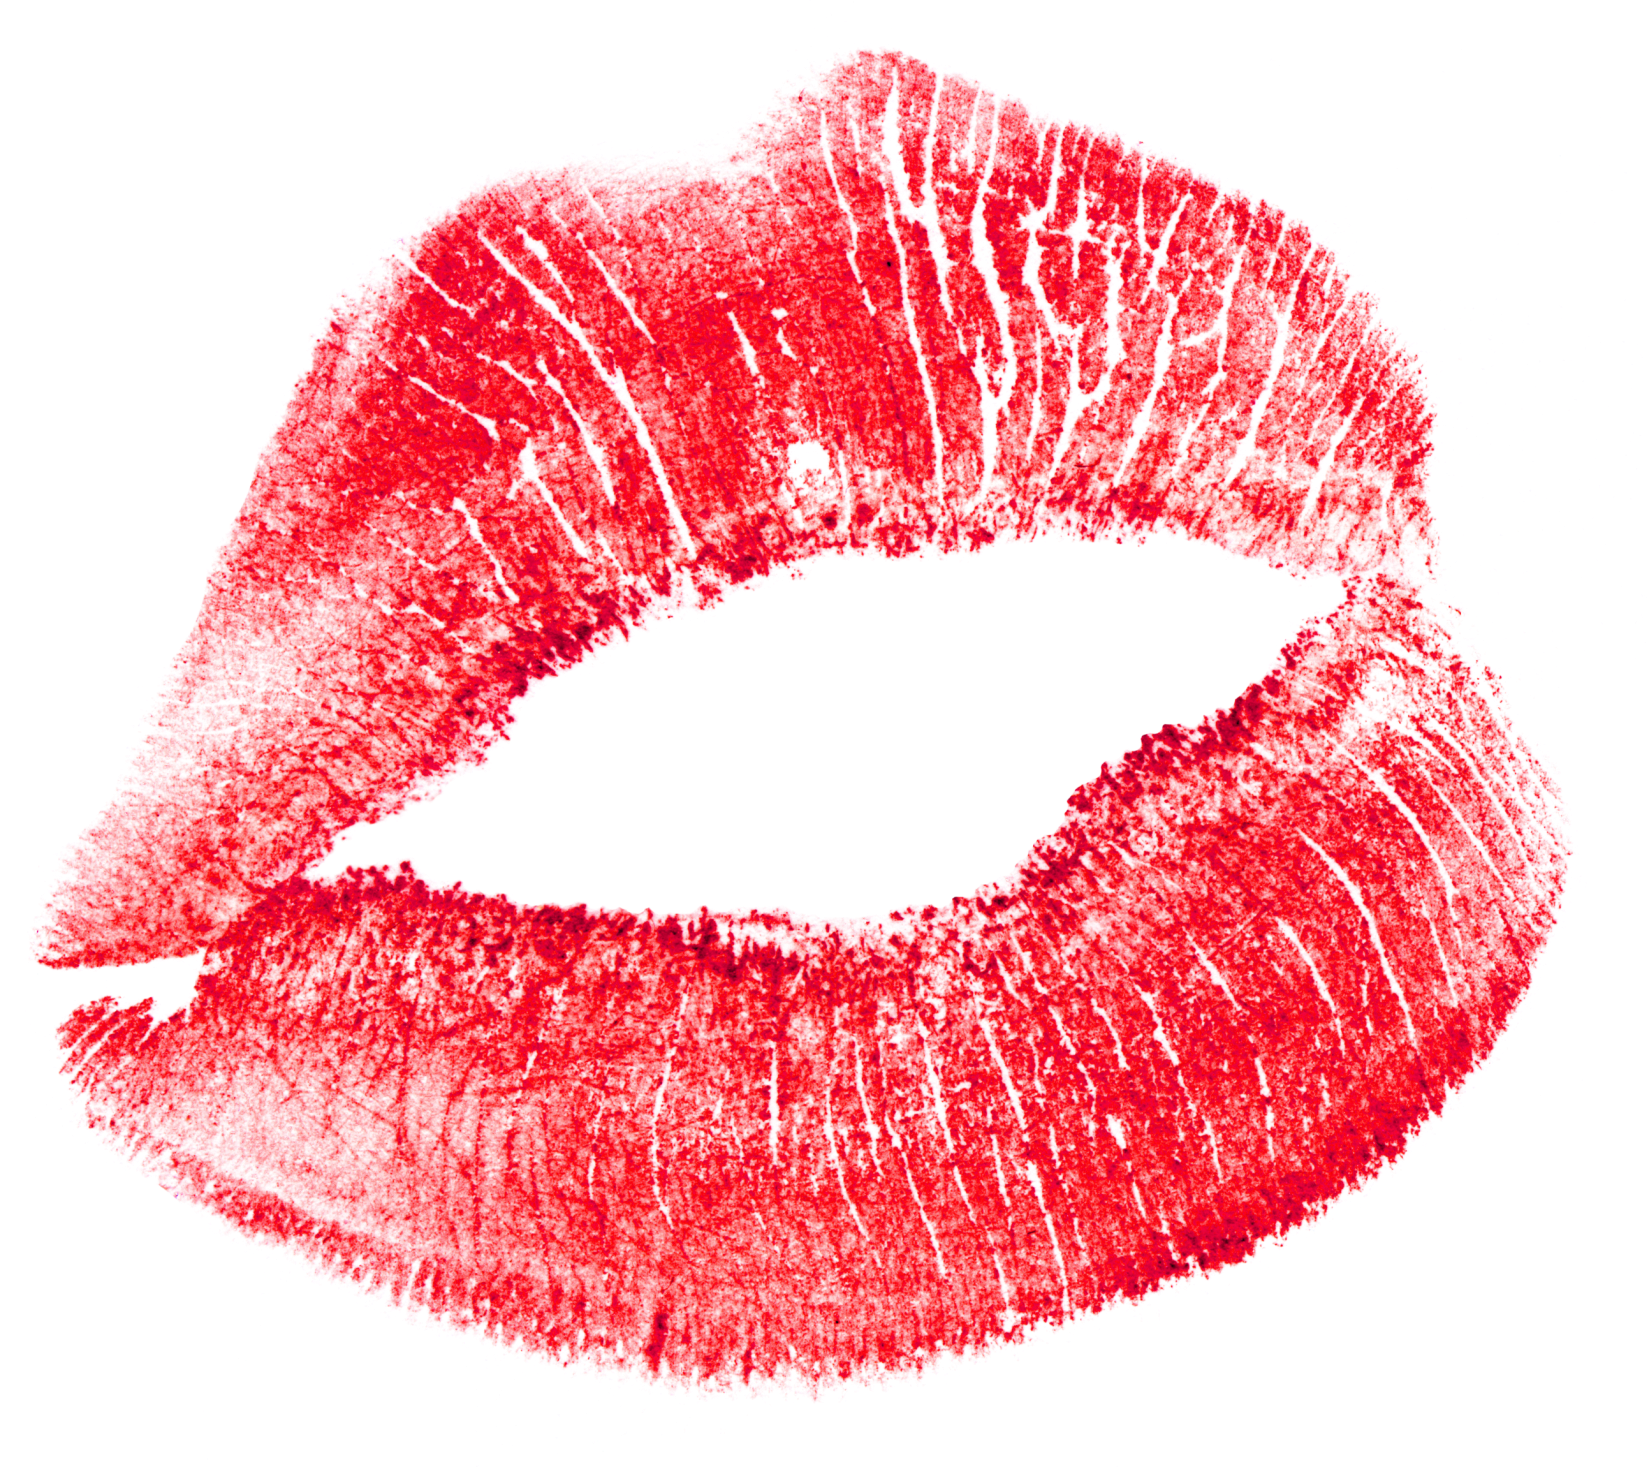 Kiss png image. Lips purepng free transparent